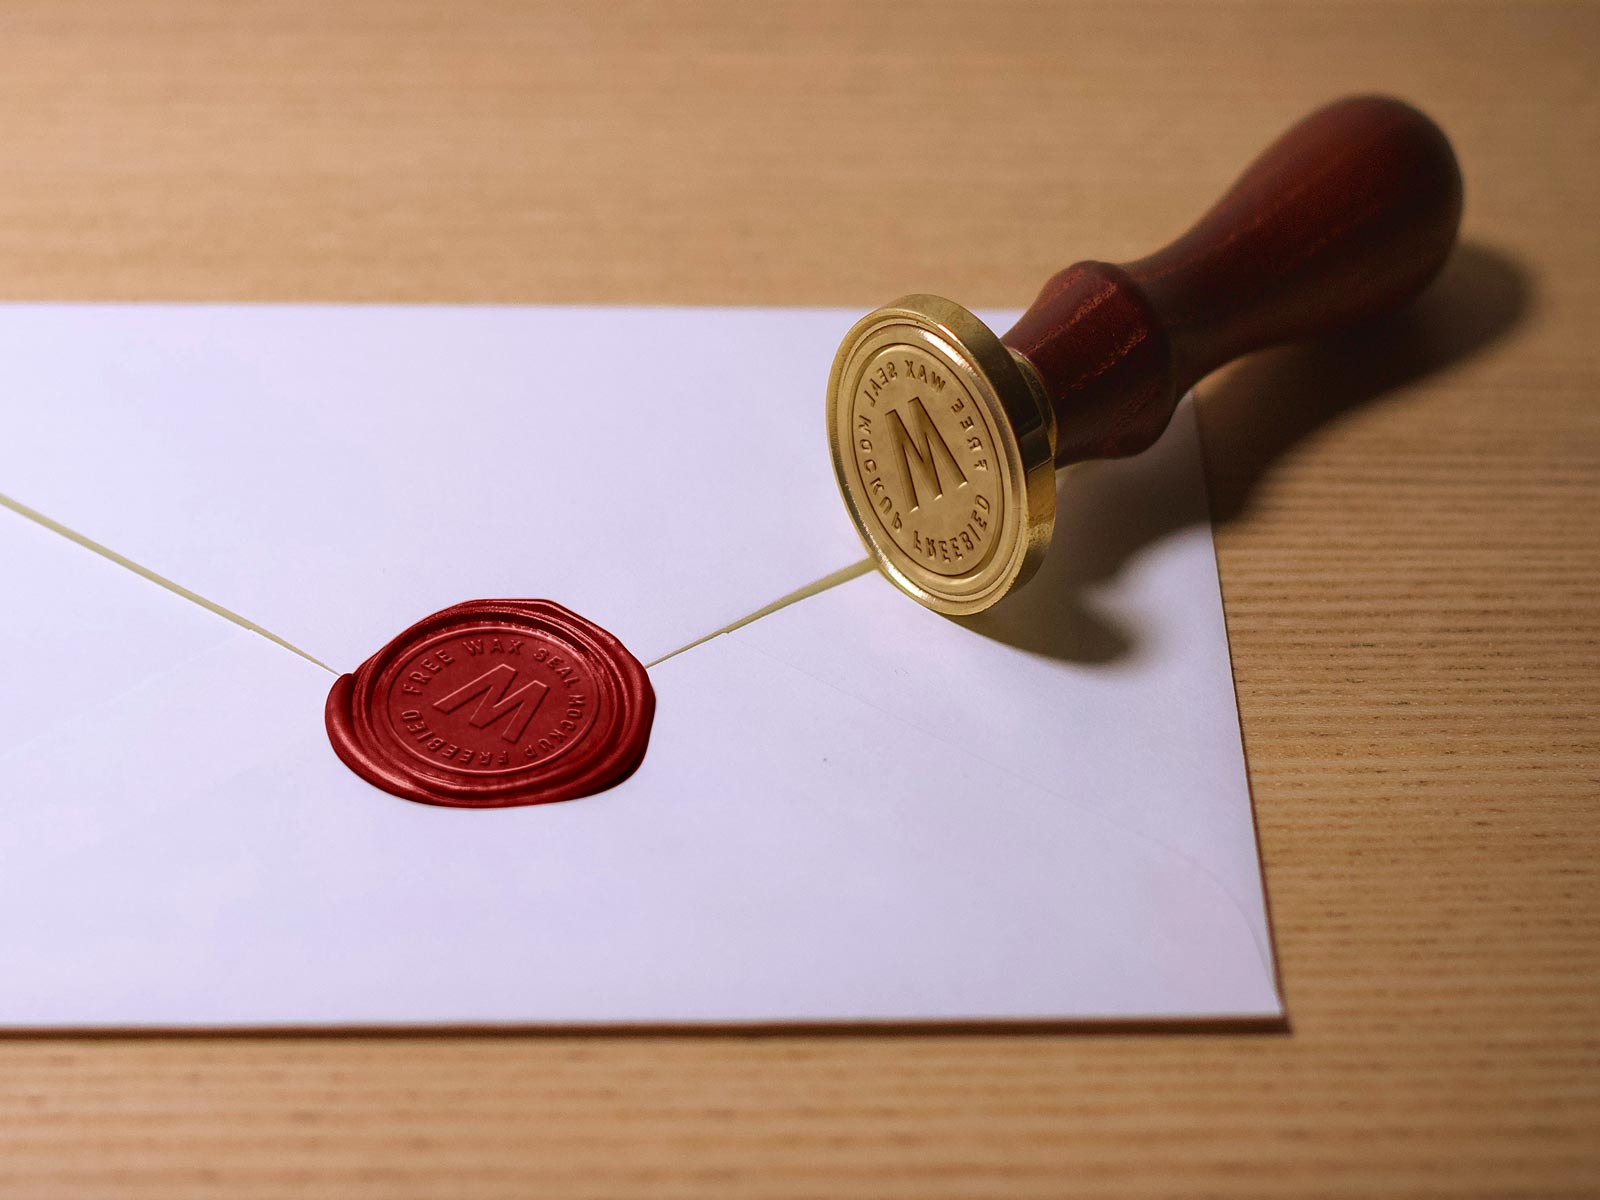 There are so many types and shapes of rubber stamps for official documents,. Free Wax Seal Stamp Mockup Psd Designbolts